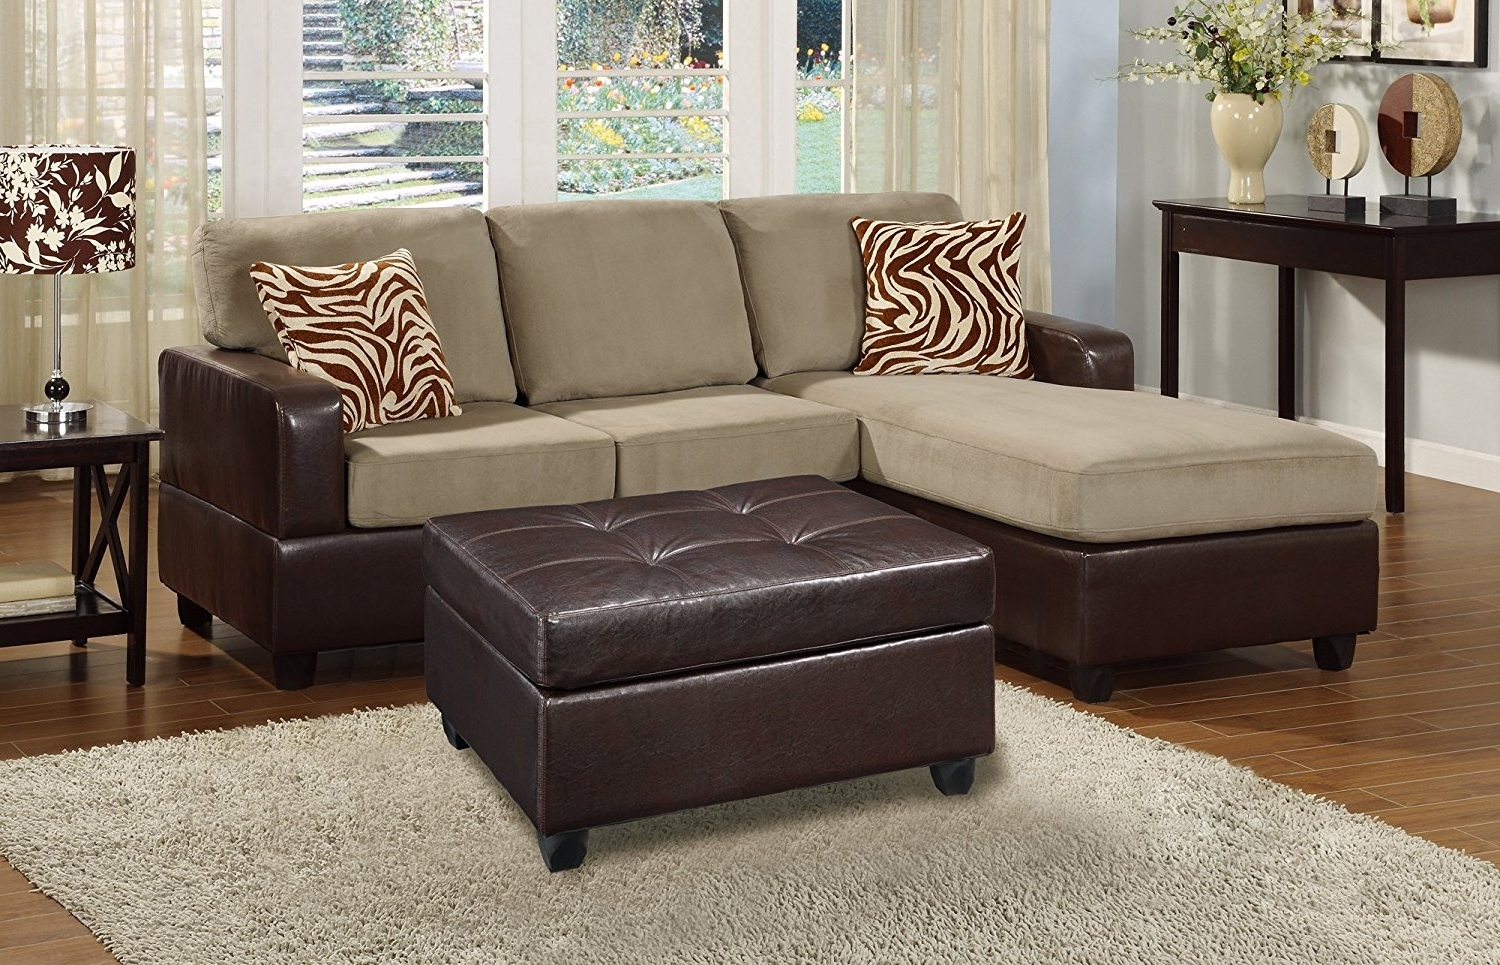 Latest Small Sectional Sofas With Chaise And Ottoman Regarding Amazon: Bobkona Manhanttan Reversible Microfiber 3 Piece (View 2 of 15)